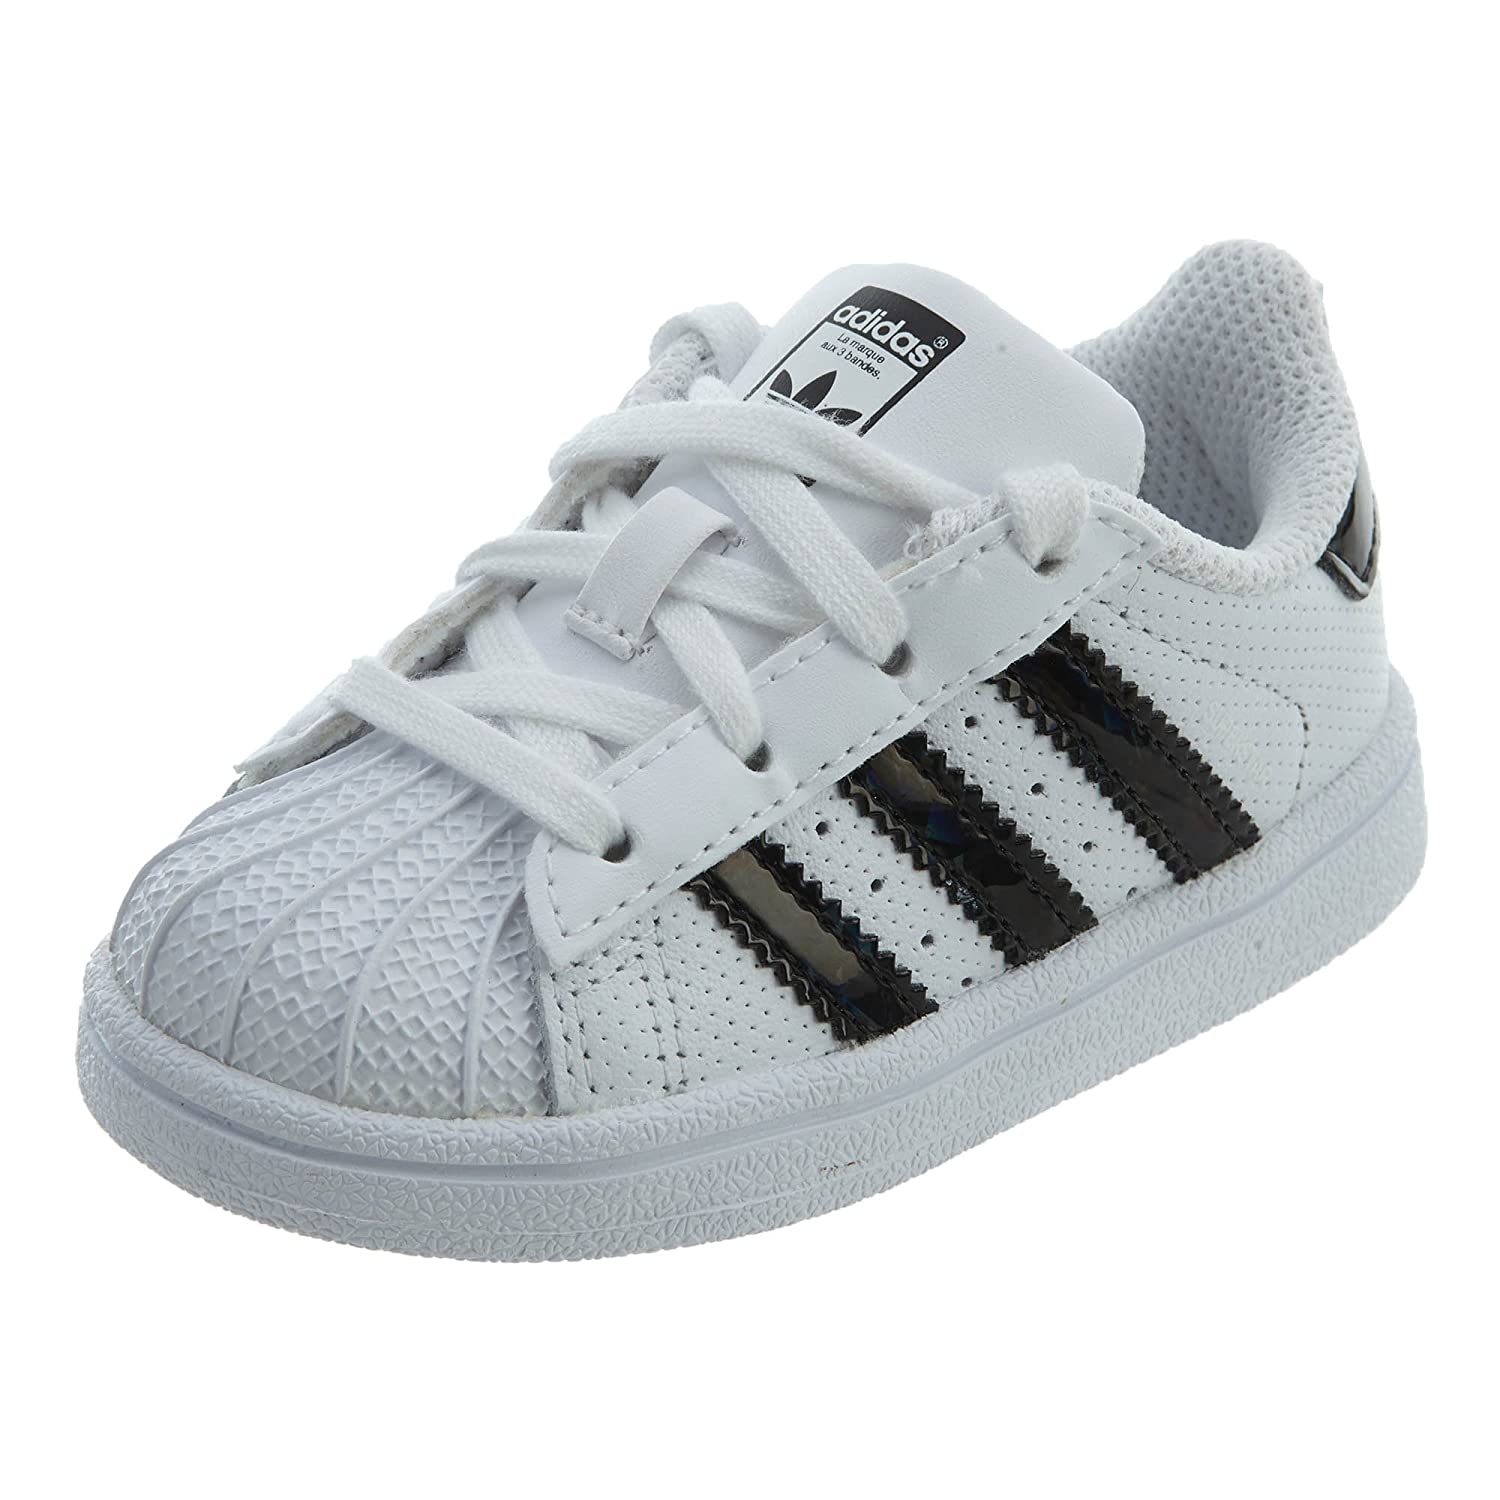 new product 9c433 939d4 adidas Originals Baby Boys Originals Superstar Shoes I (7.5 Toddler M)  White/Black